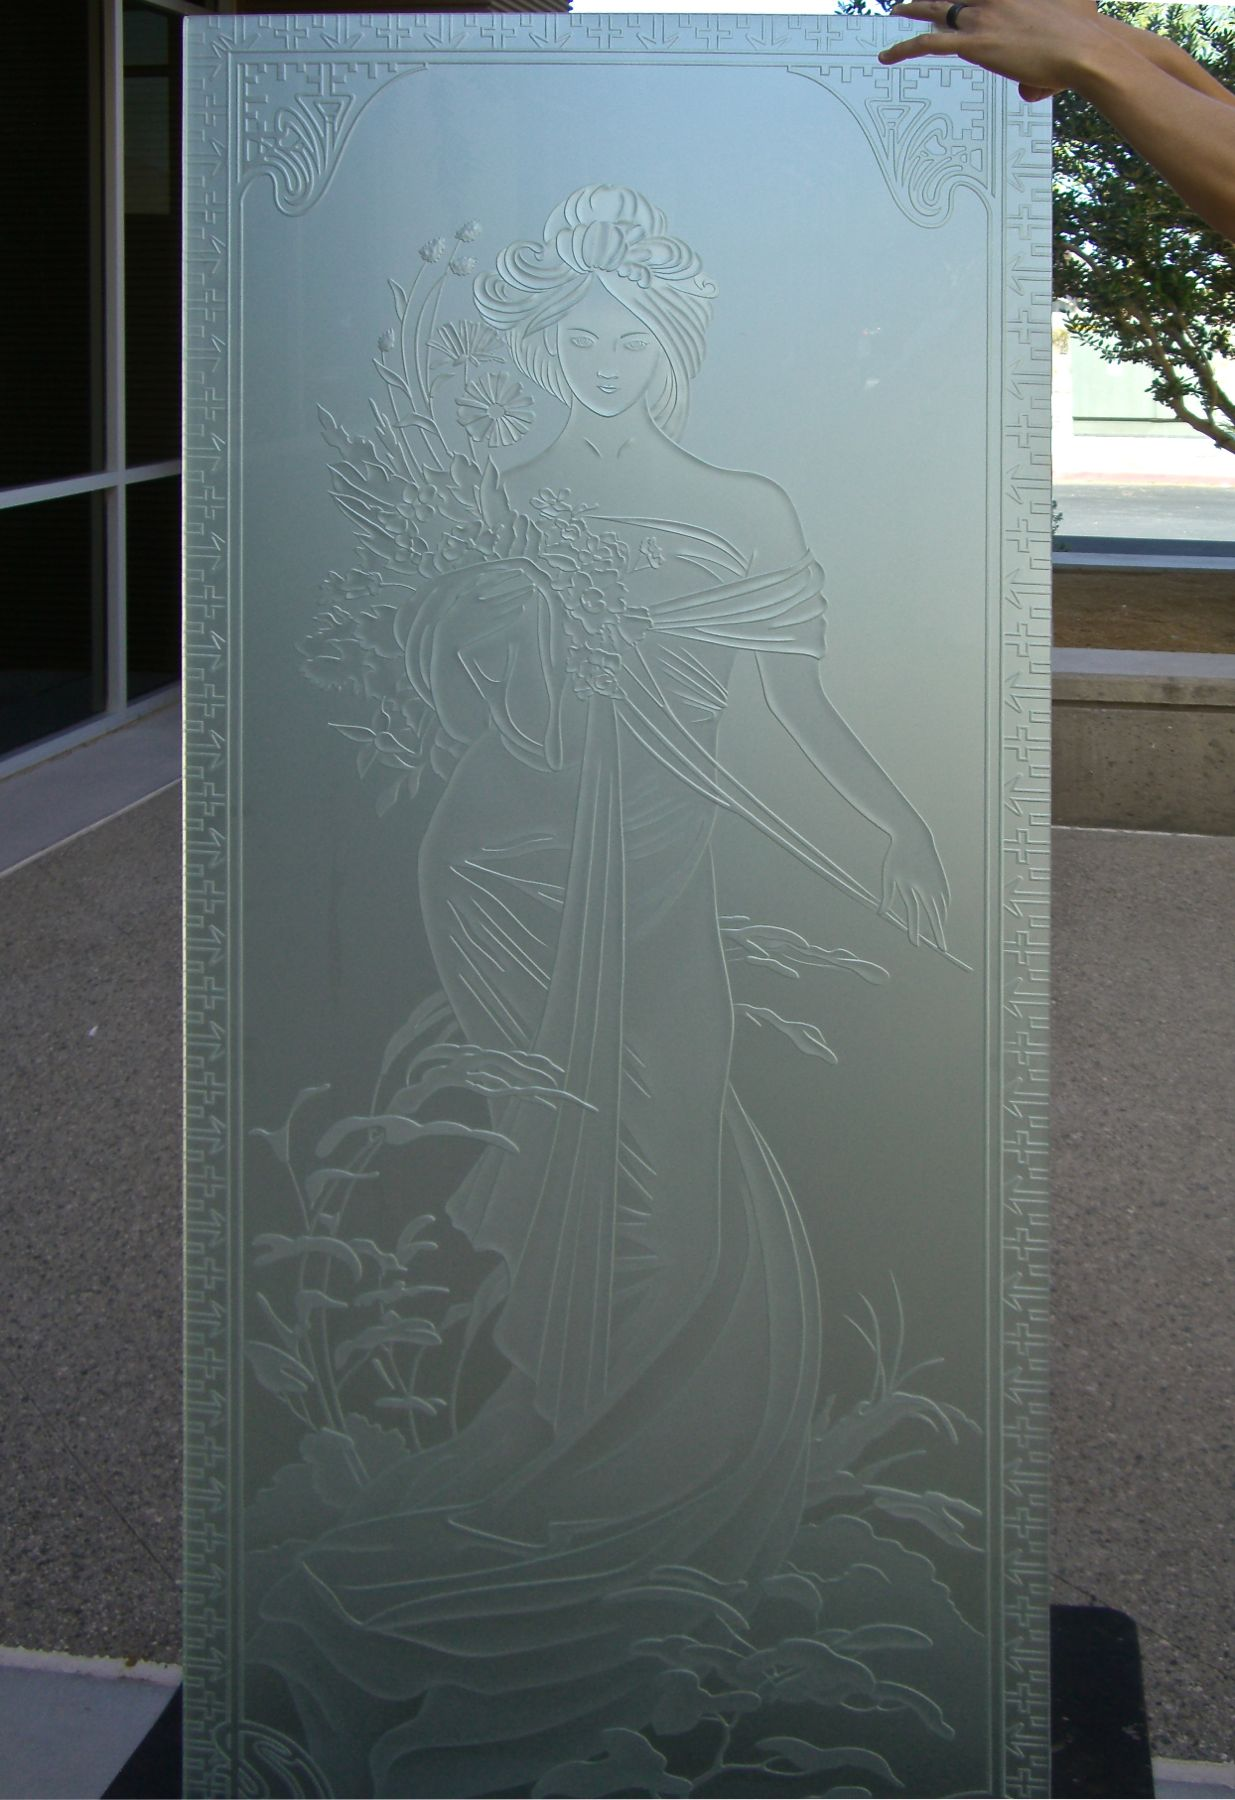 Printemps woman etched glass doors sans soucie interior glass doors with glass etching french printemps woman portrait by sans soucie rubansaba